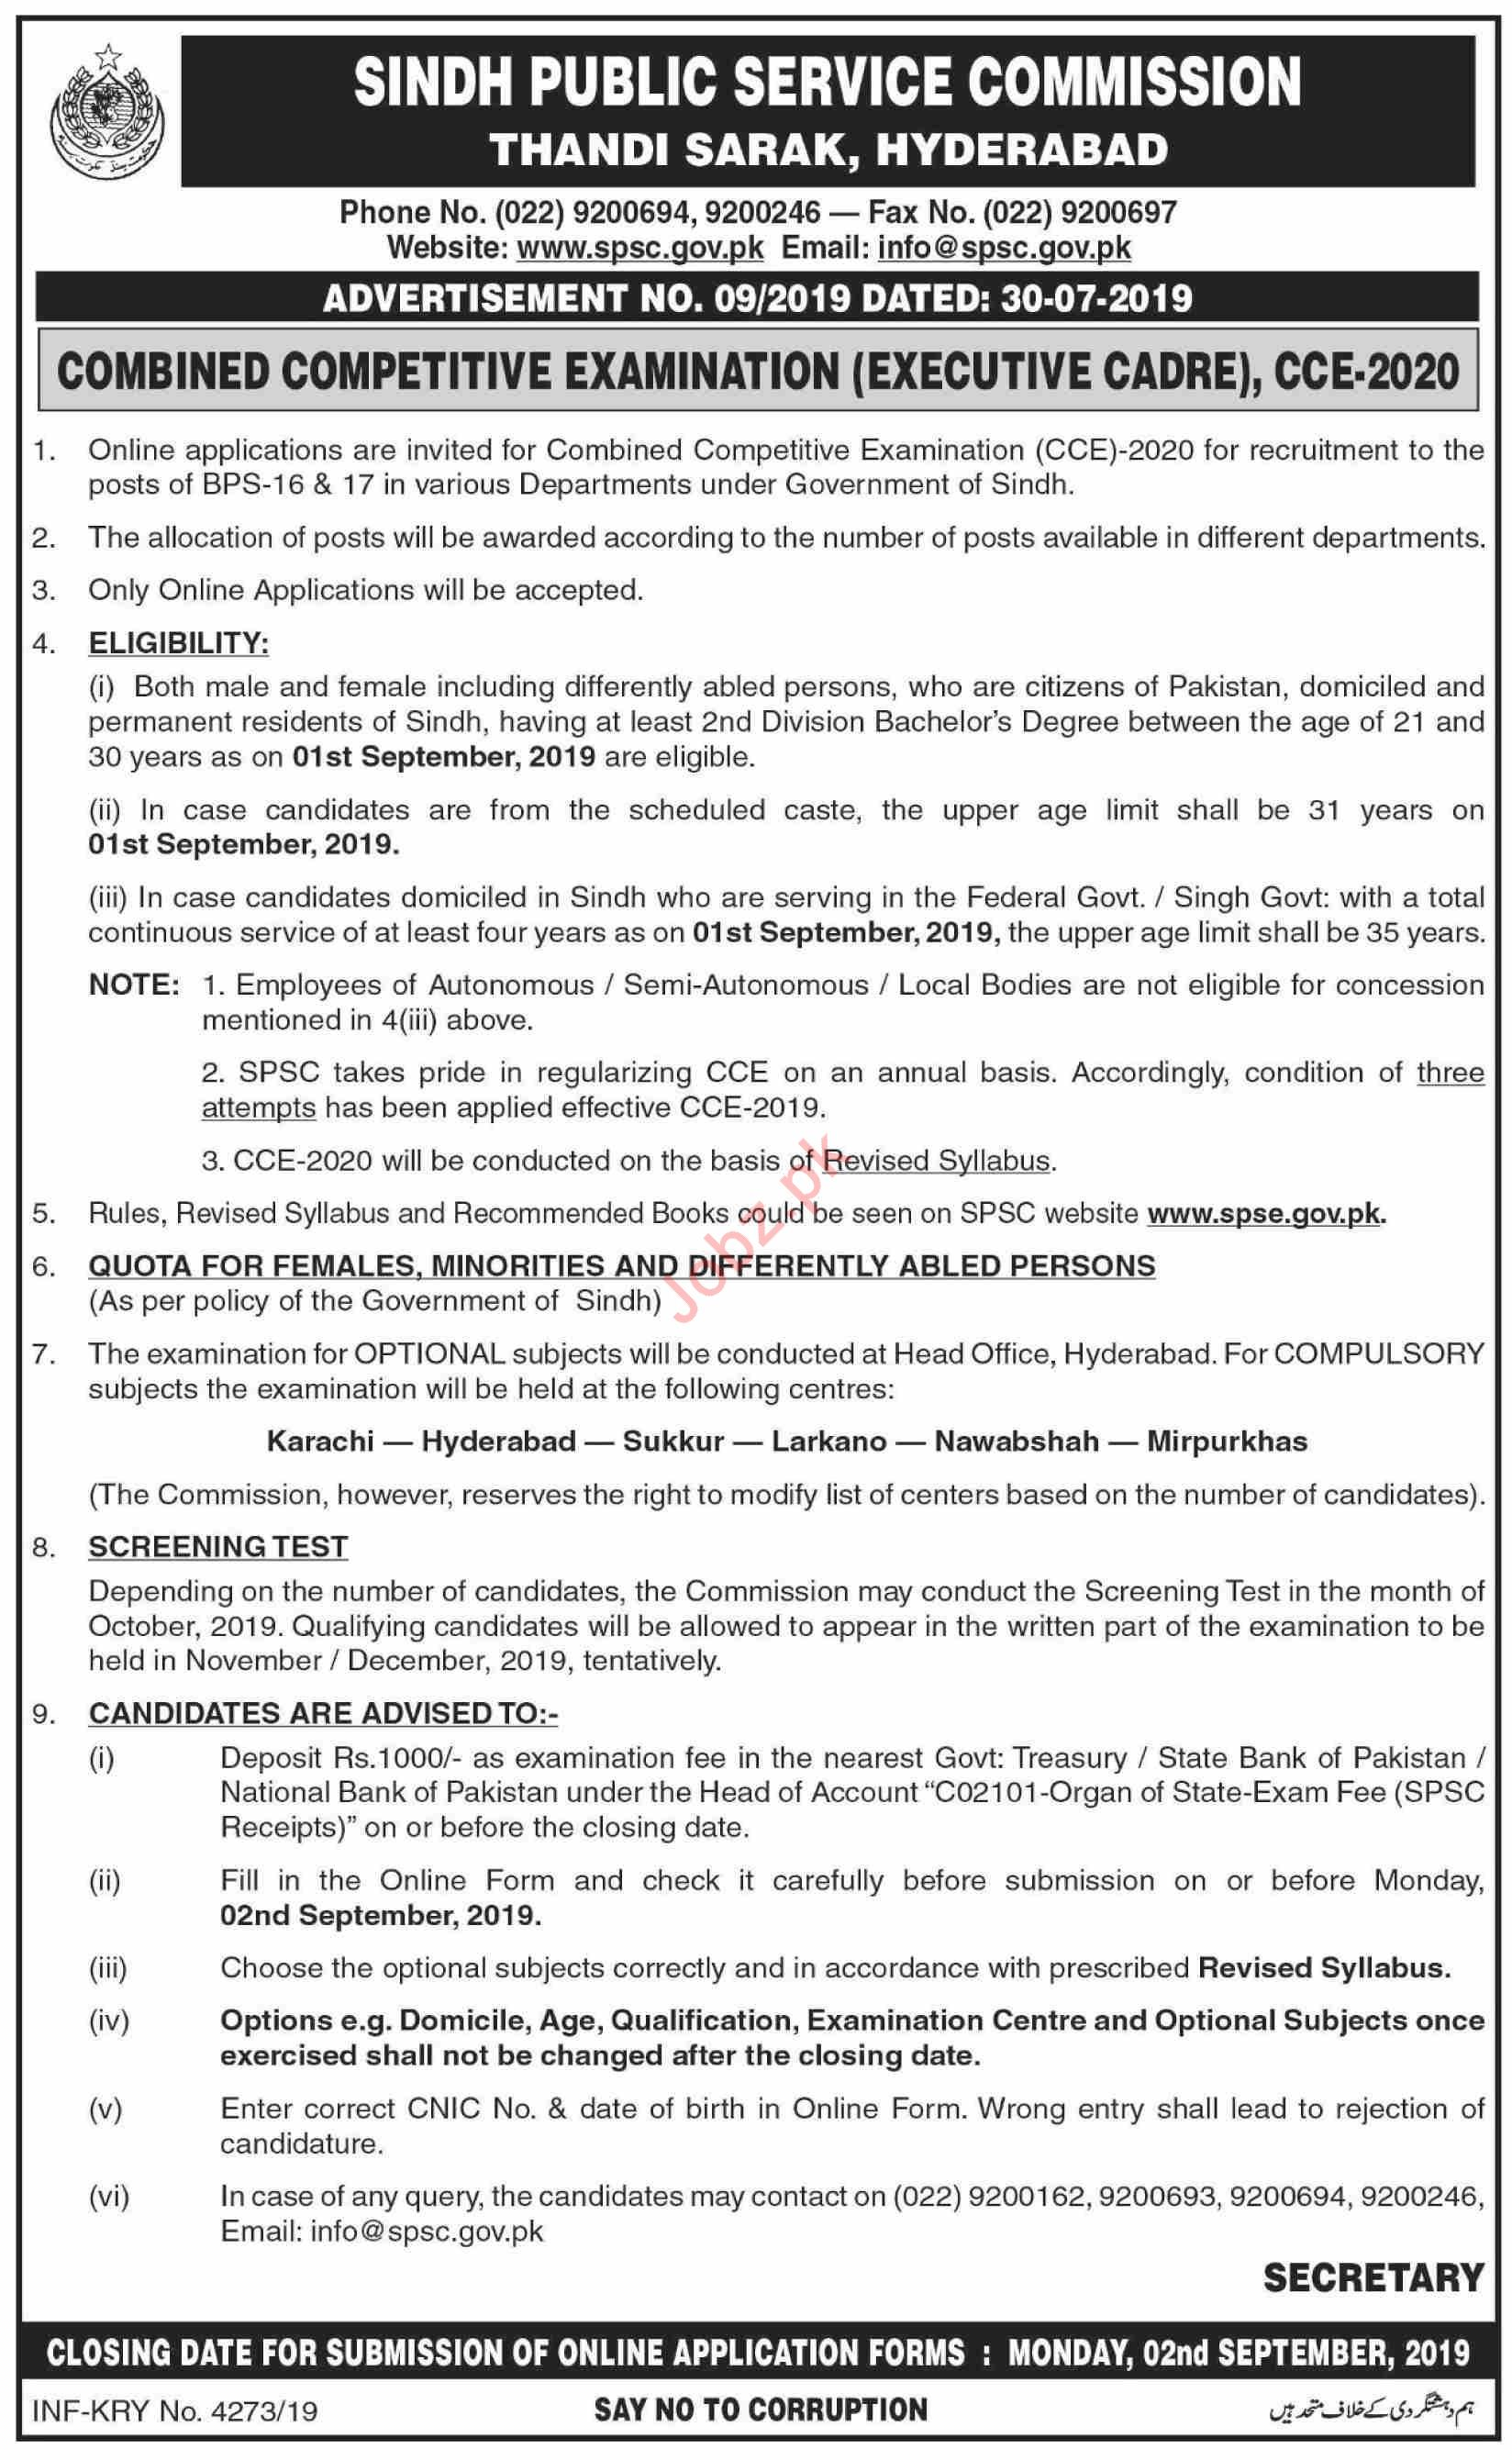 Sindh Public Service Commission Hyderabad Jobs 2019